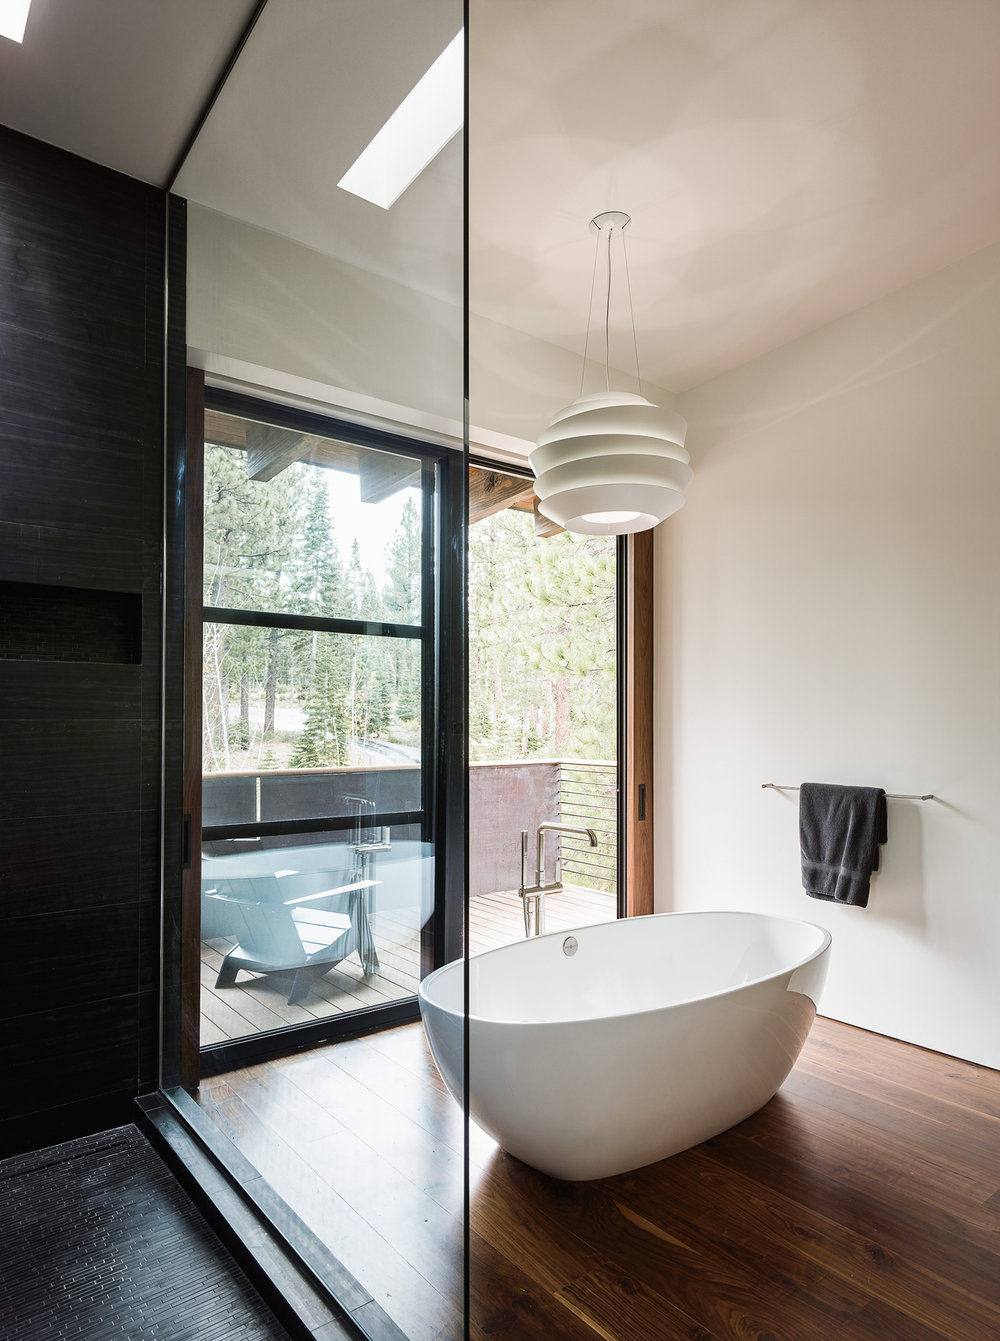 Lot 141_Master Bath_Freestanding Tub_Wood Floors.jpg